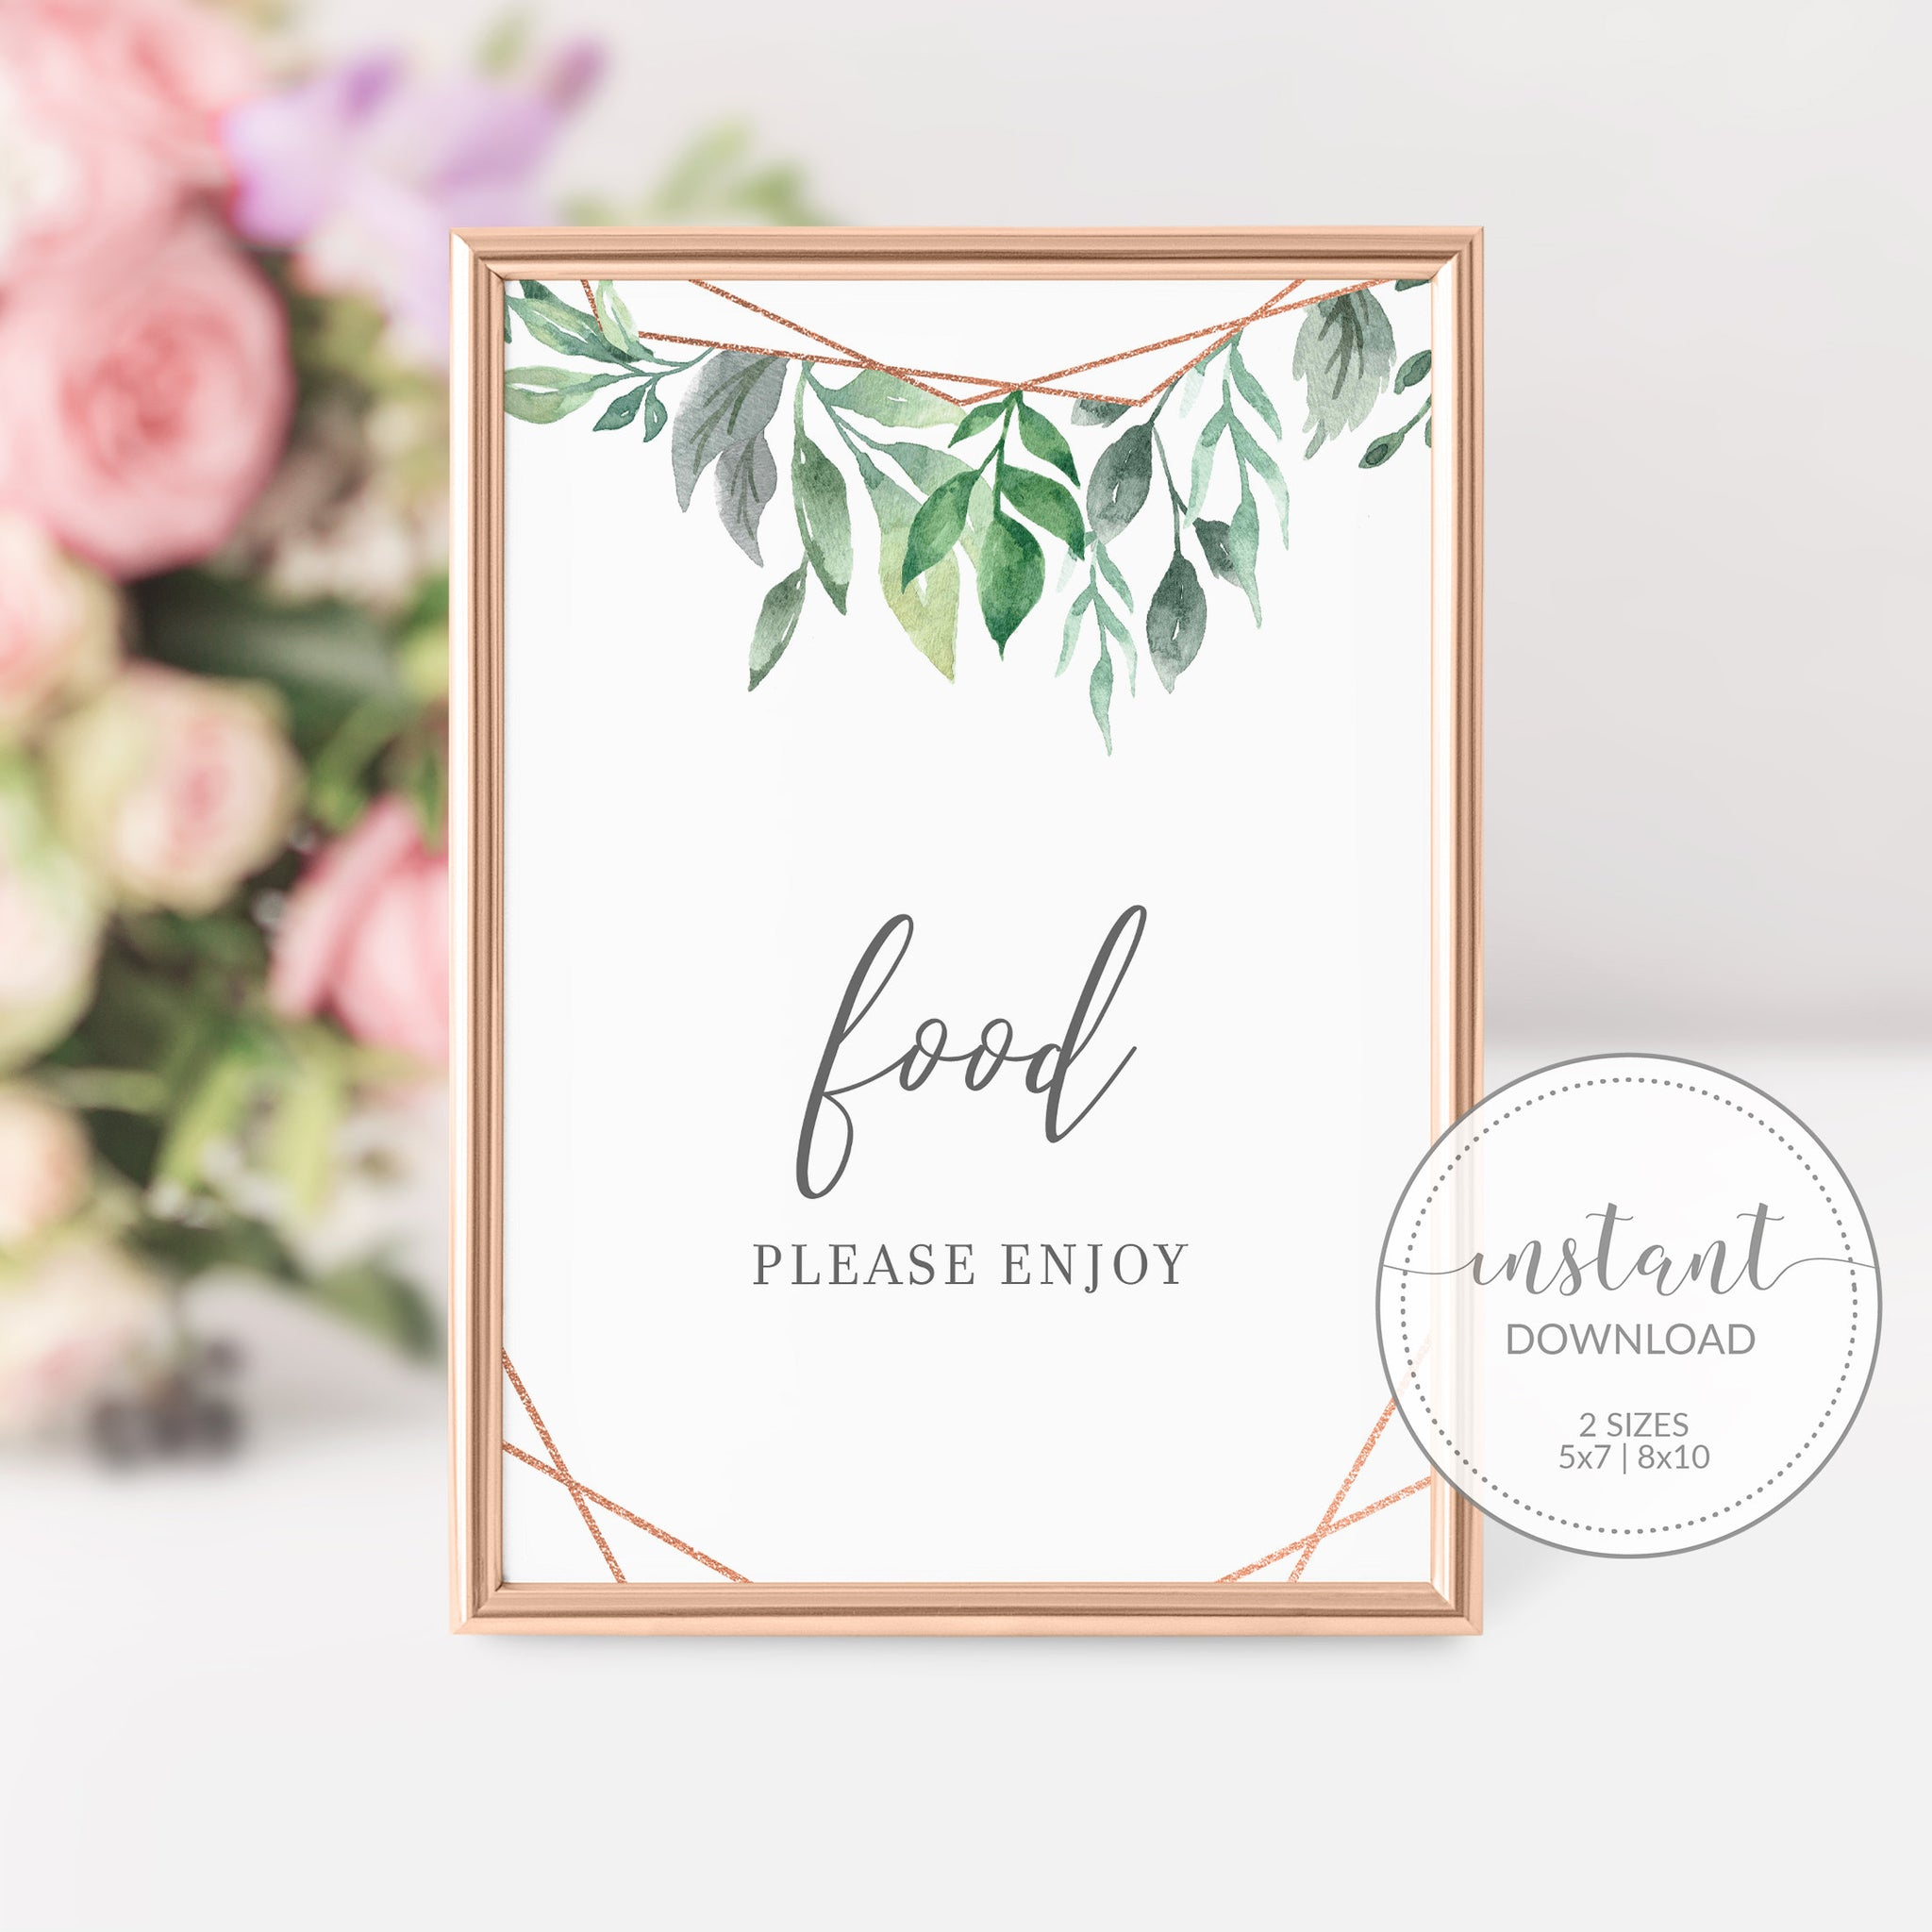 Geometric Rose Gold Greenery Printable Food Sign INSTANT DOWNLOAD, Bridal Shower, Baby Shower, Wedding Decorations and Supplies - GFRG100